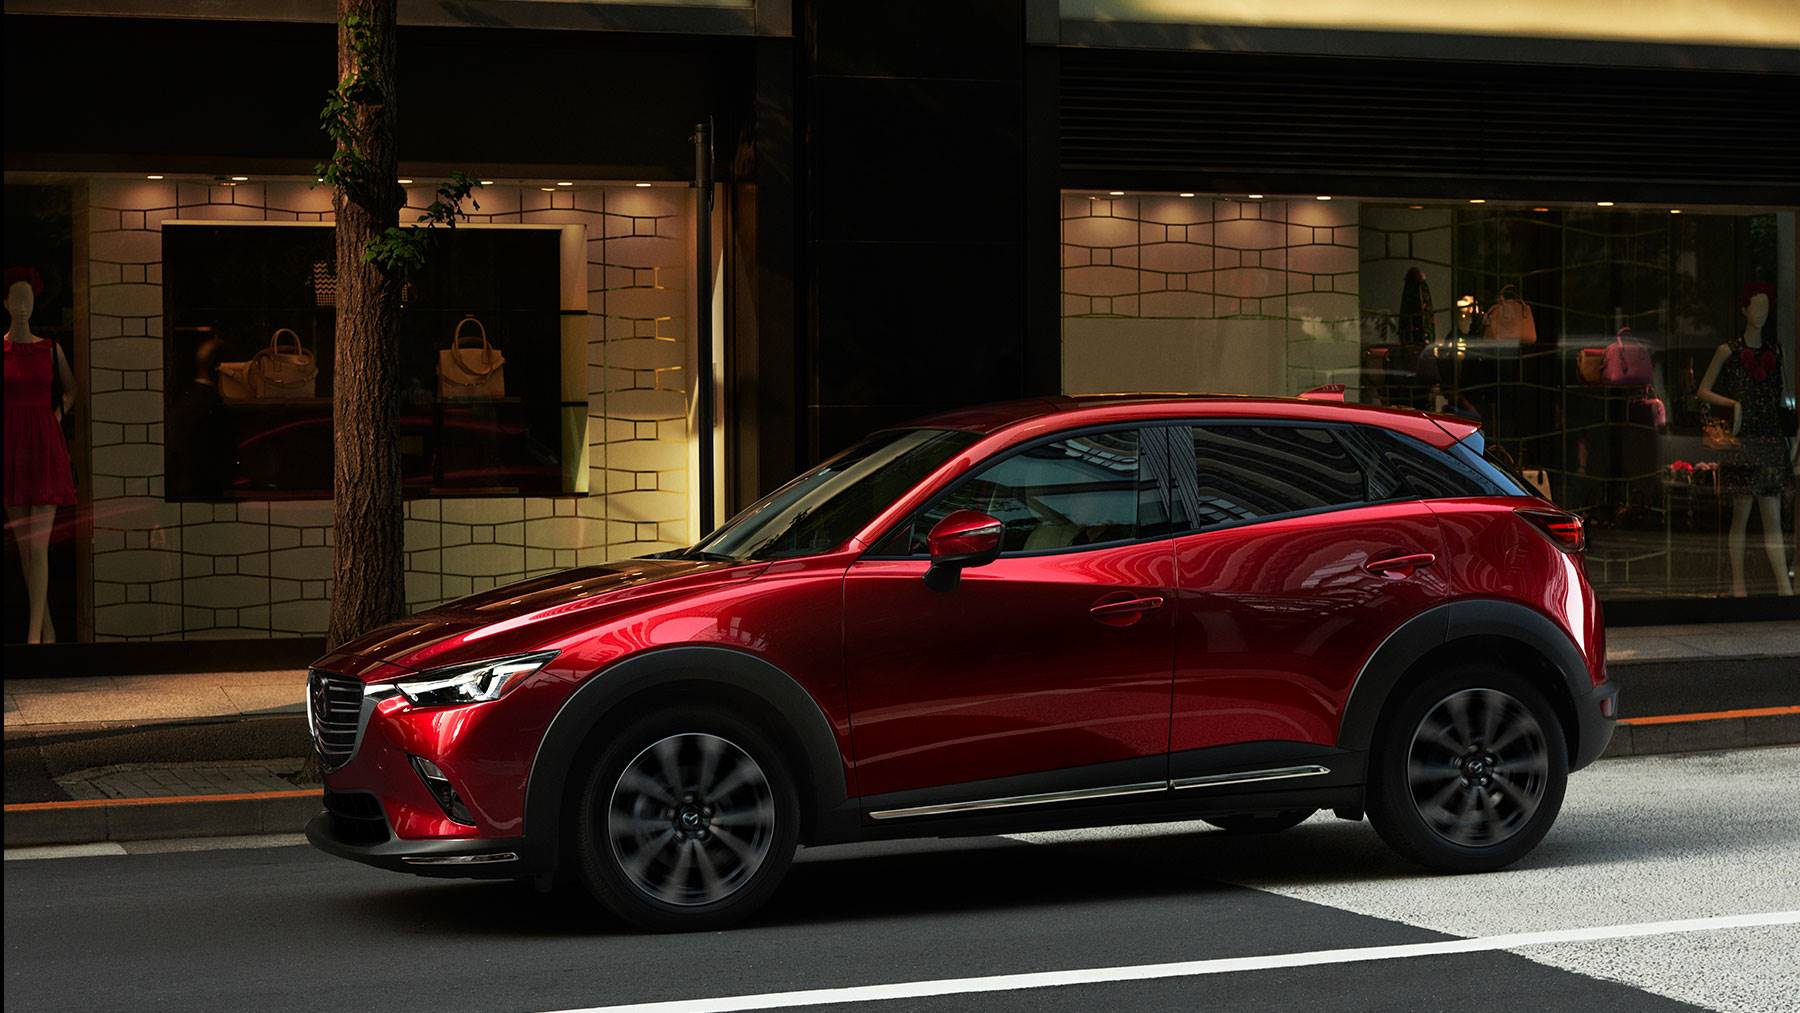 2019 Mazda CX-3 for Sale near Phoenix, AZ